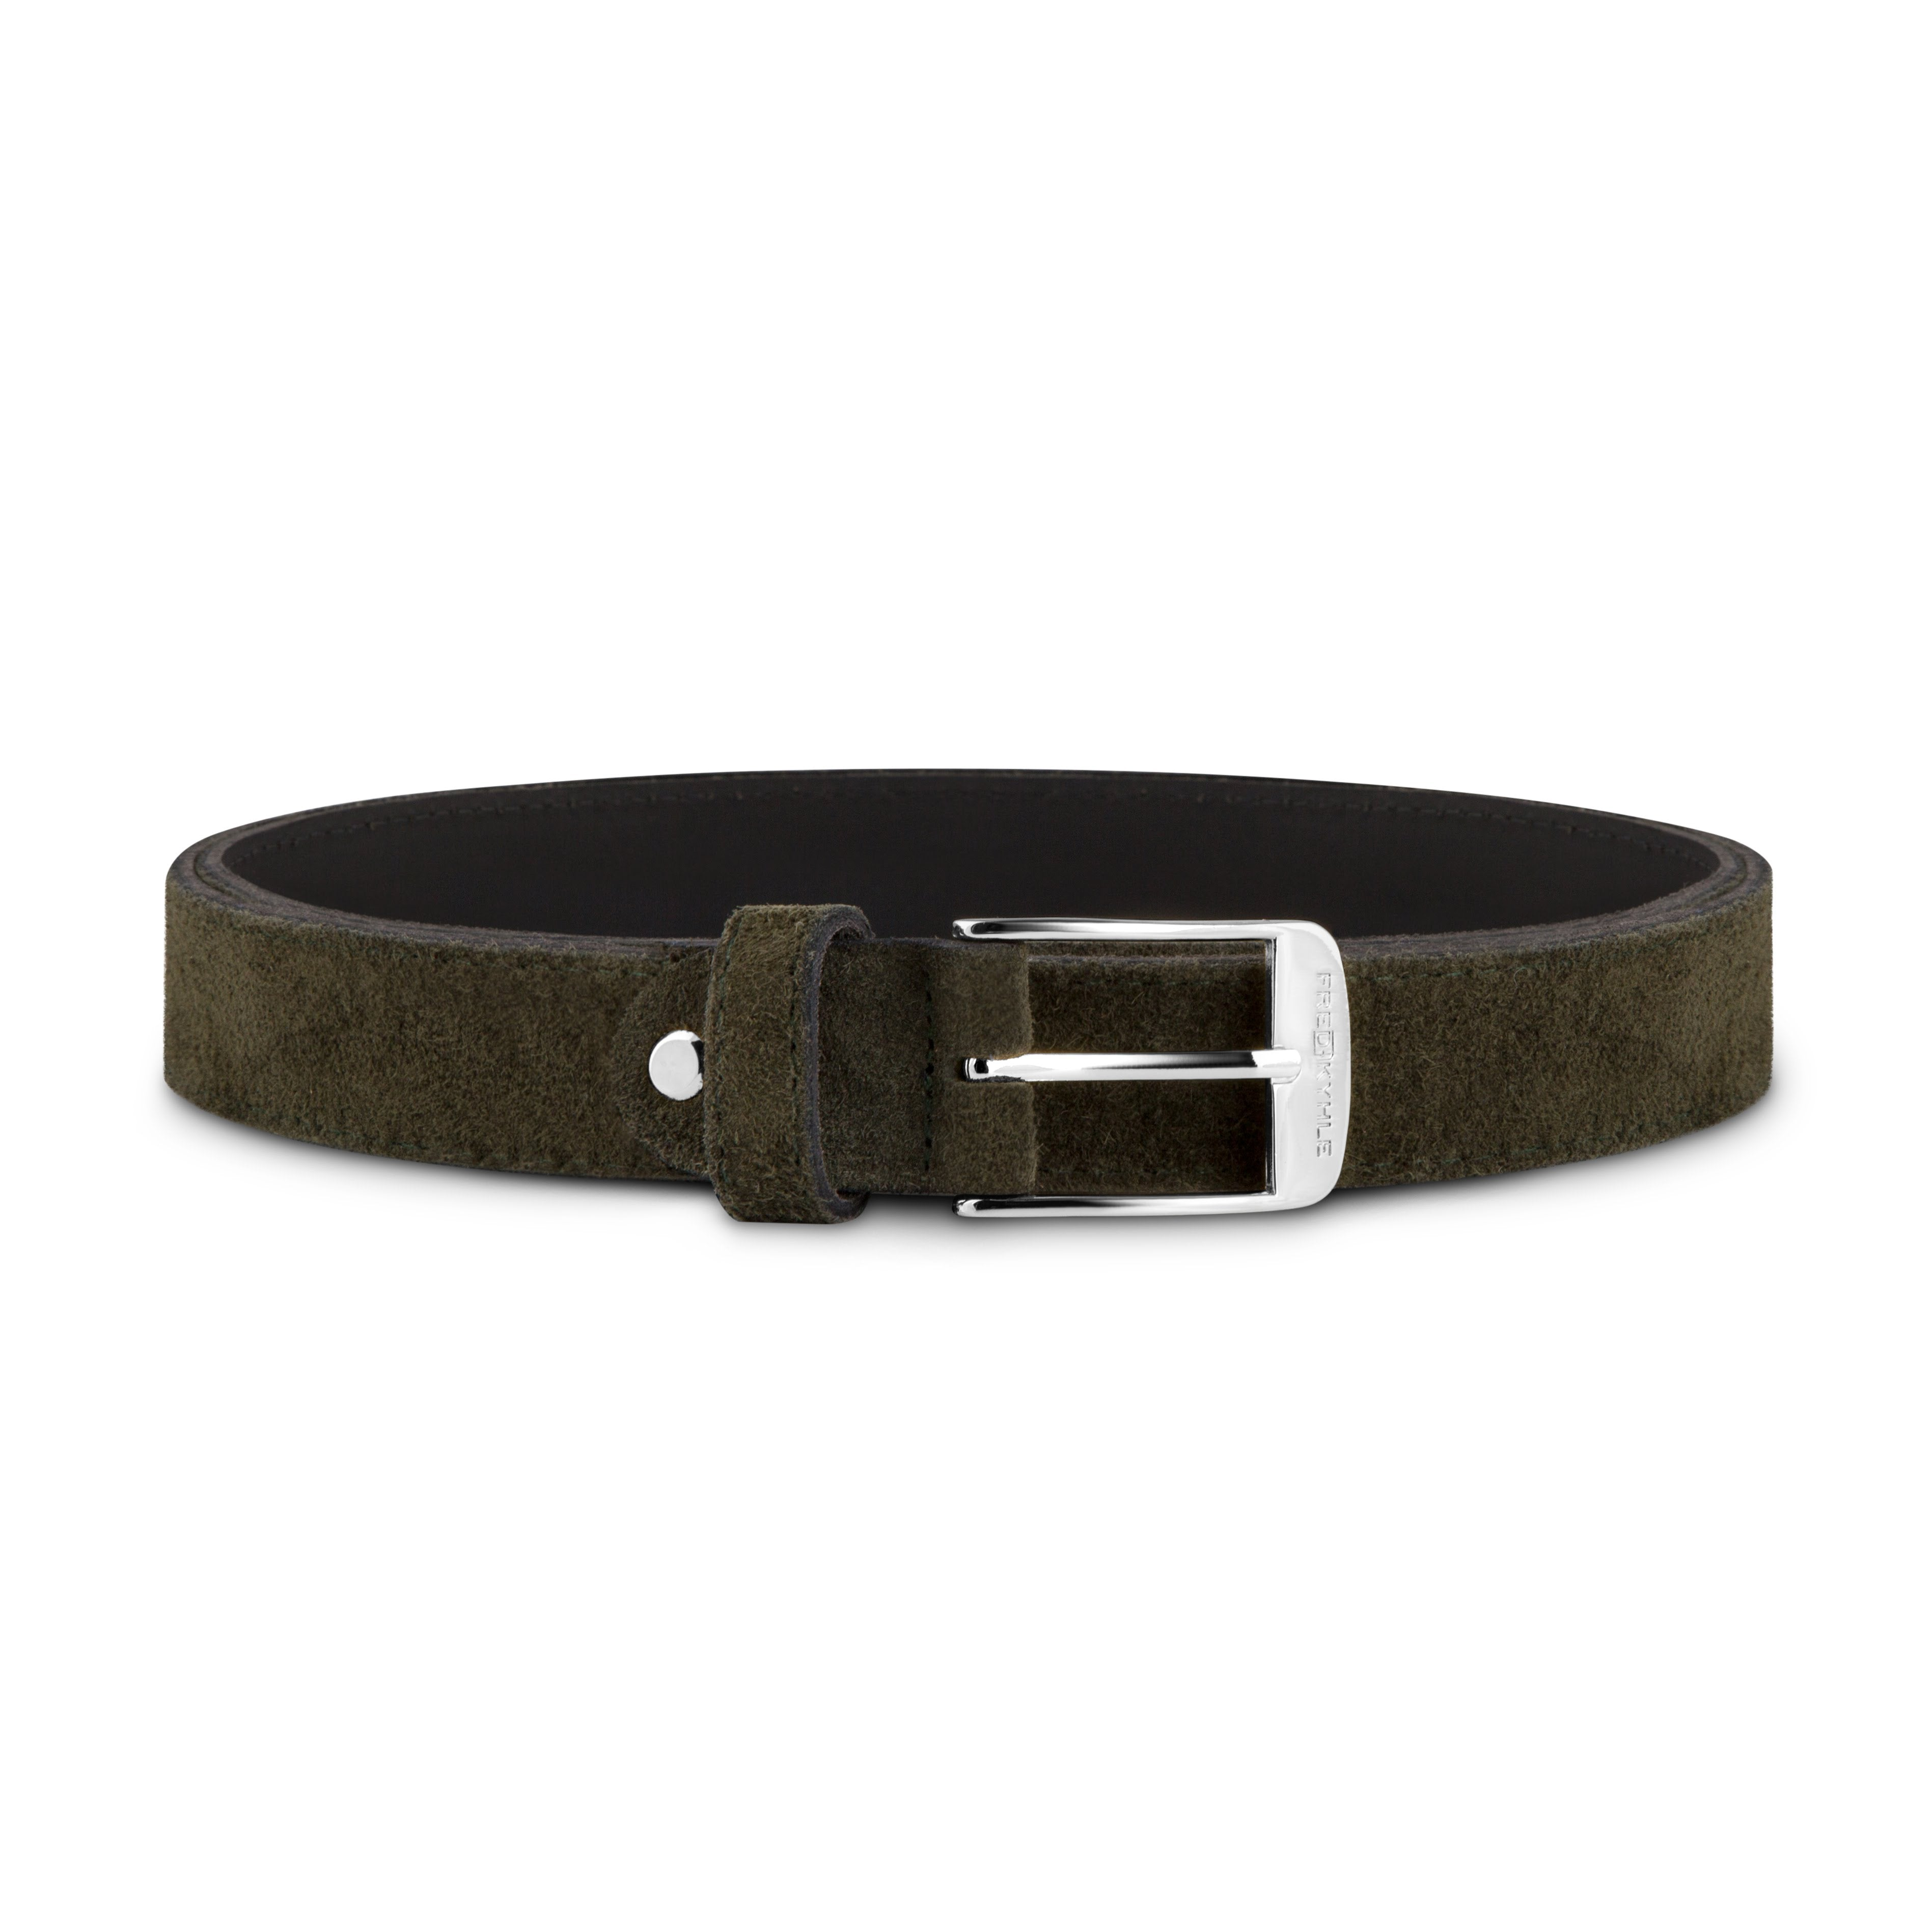 Dark Green Suede with Silver Buckle